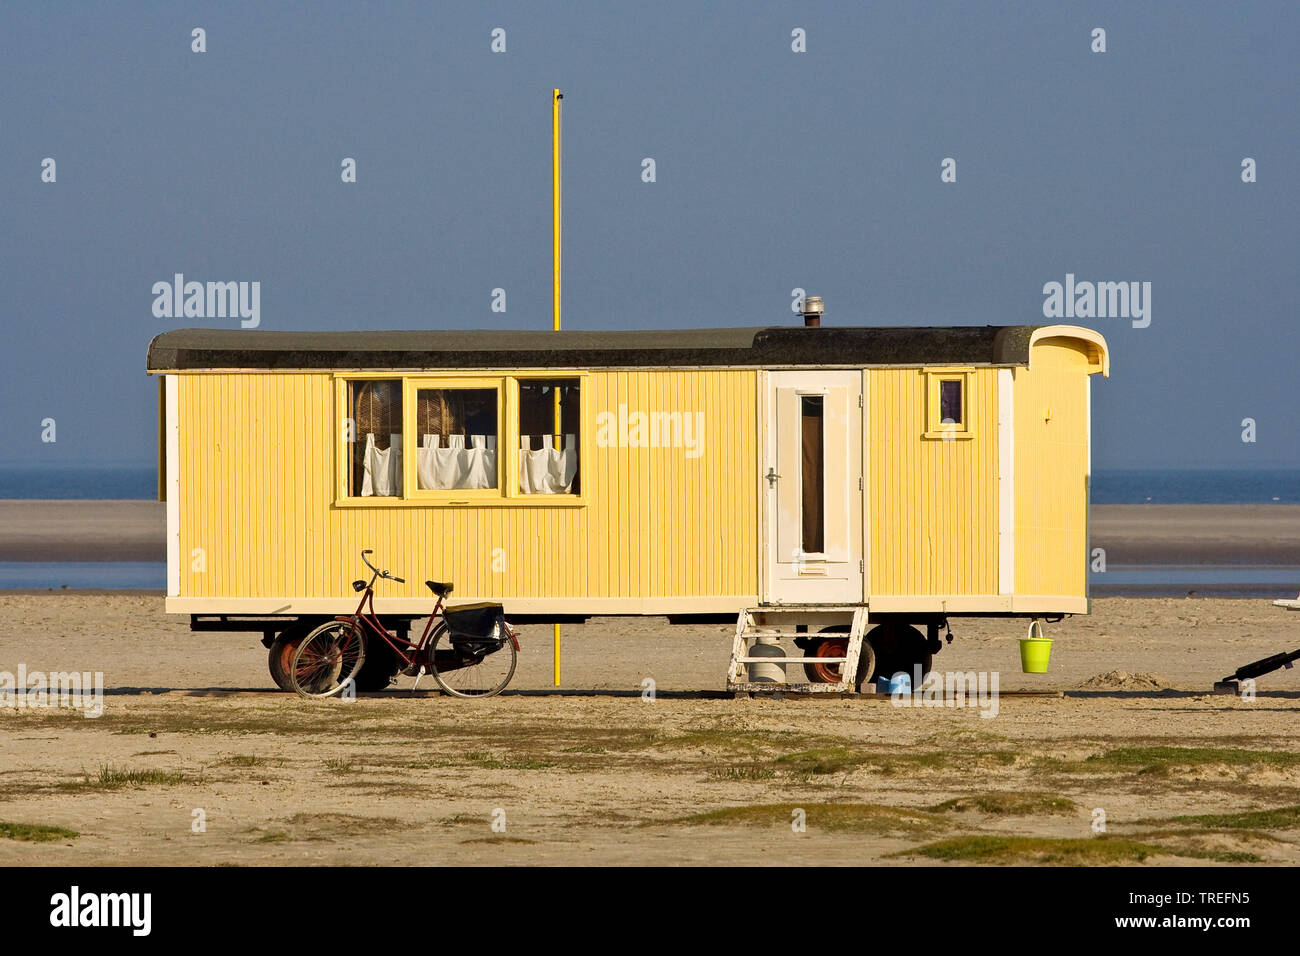 Caravan am Nordseestrand, Niederlande, Schiermonnikoog | Caravan on the North Sea beach, Netherlands, Schiermonnikoog | BLWS525472.jpg [ (c) blickwink - Stock Image